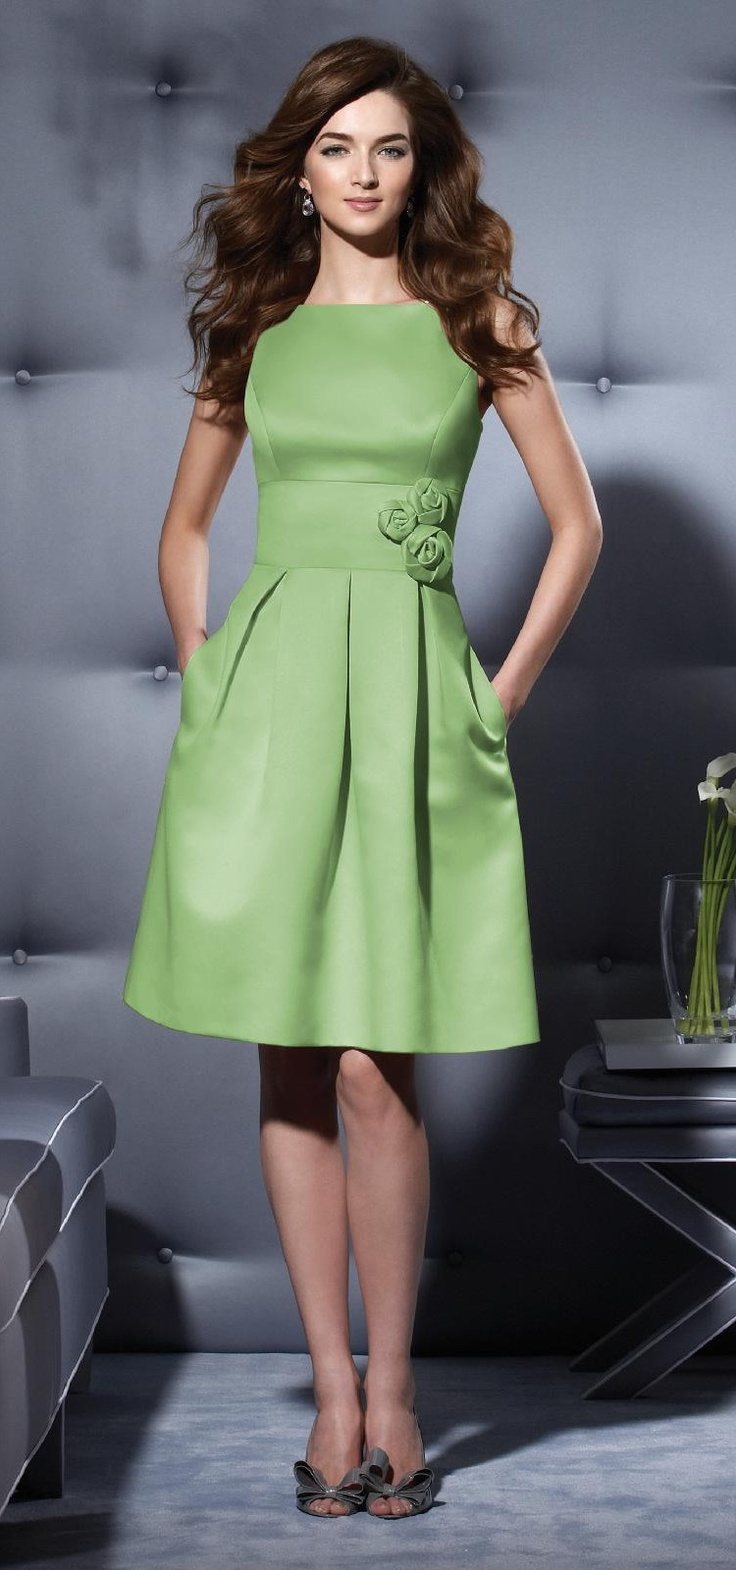 40 best bridesmaid dress ideas images on pinterest dress ideas quite like this dress considering ive got at least one tomboy bridesmaid and its not too fancy ombrellifo Choice Image